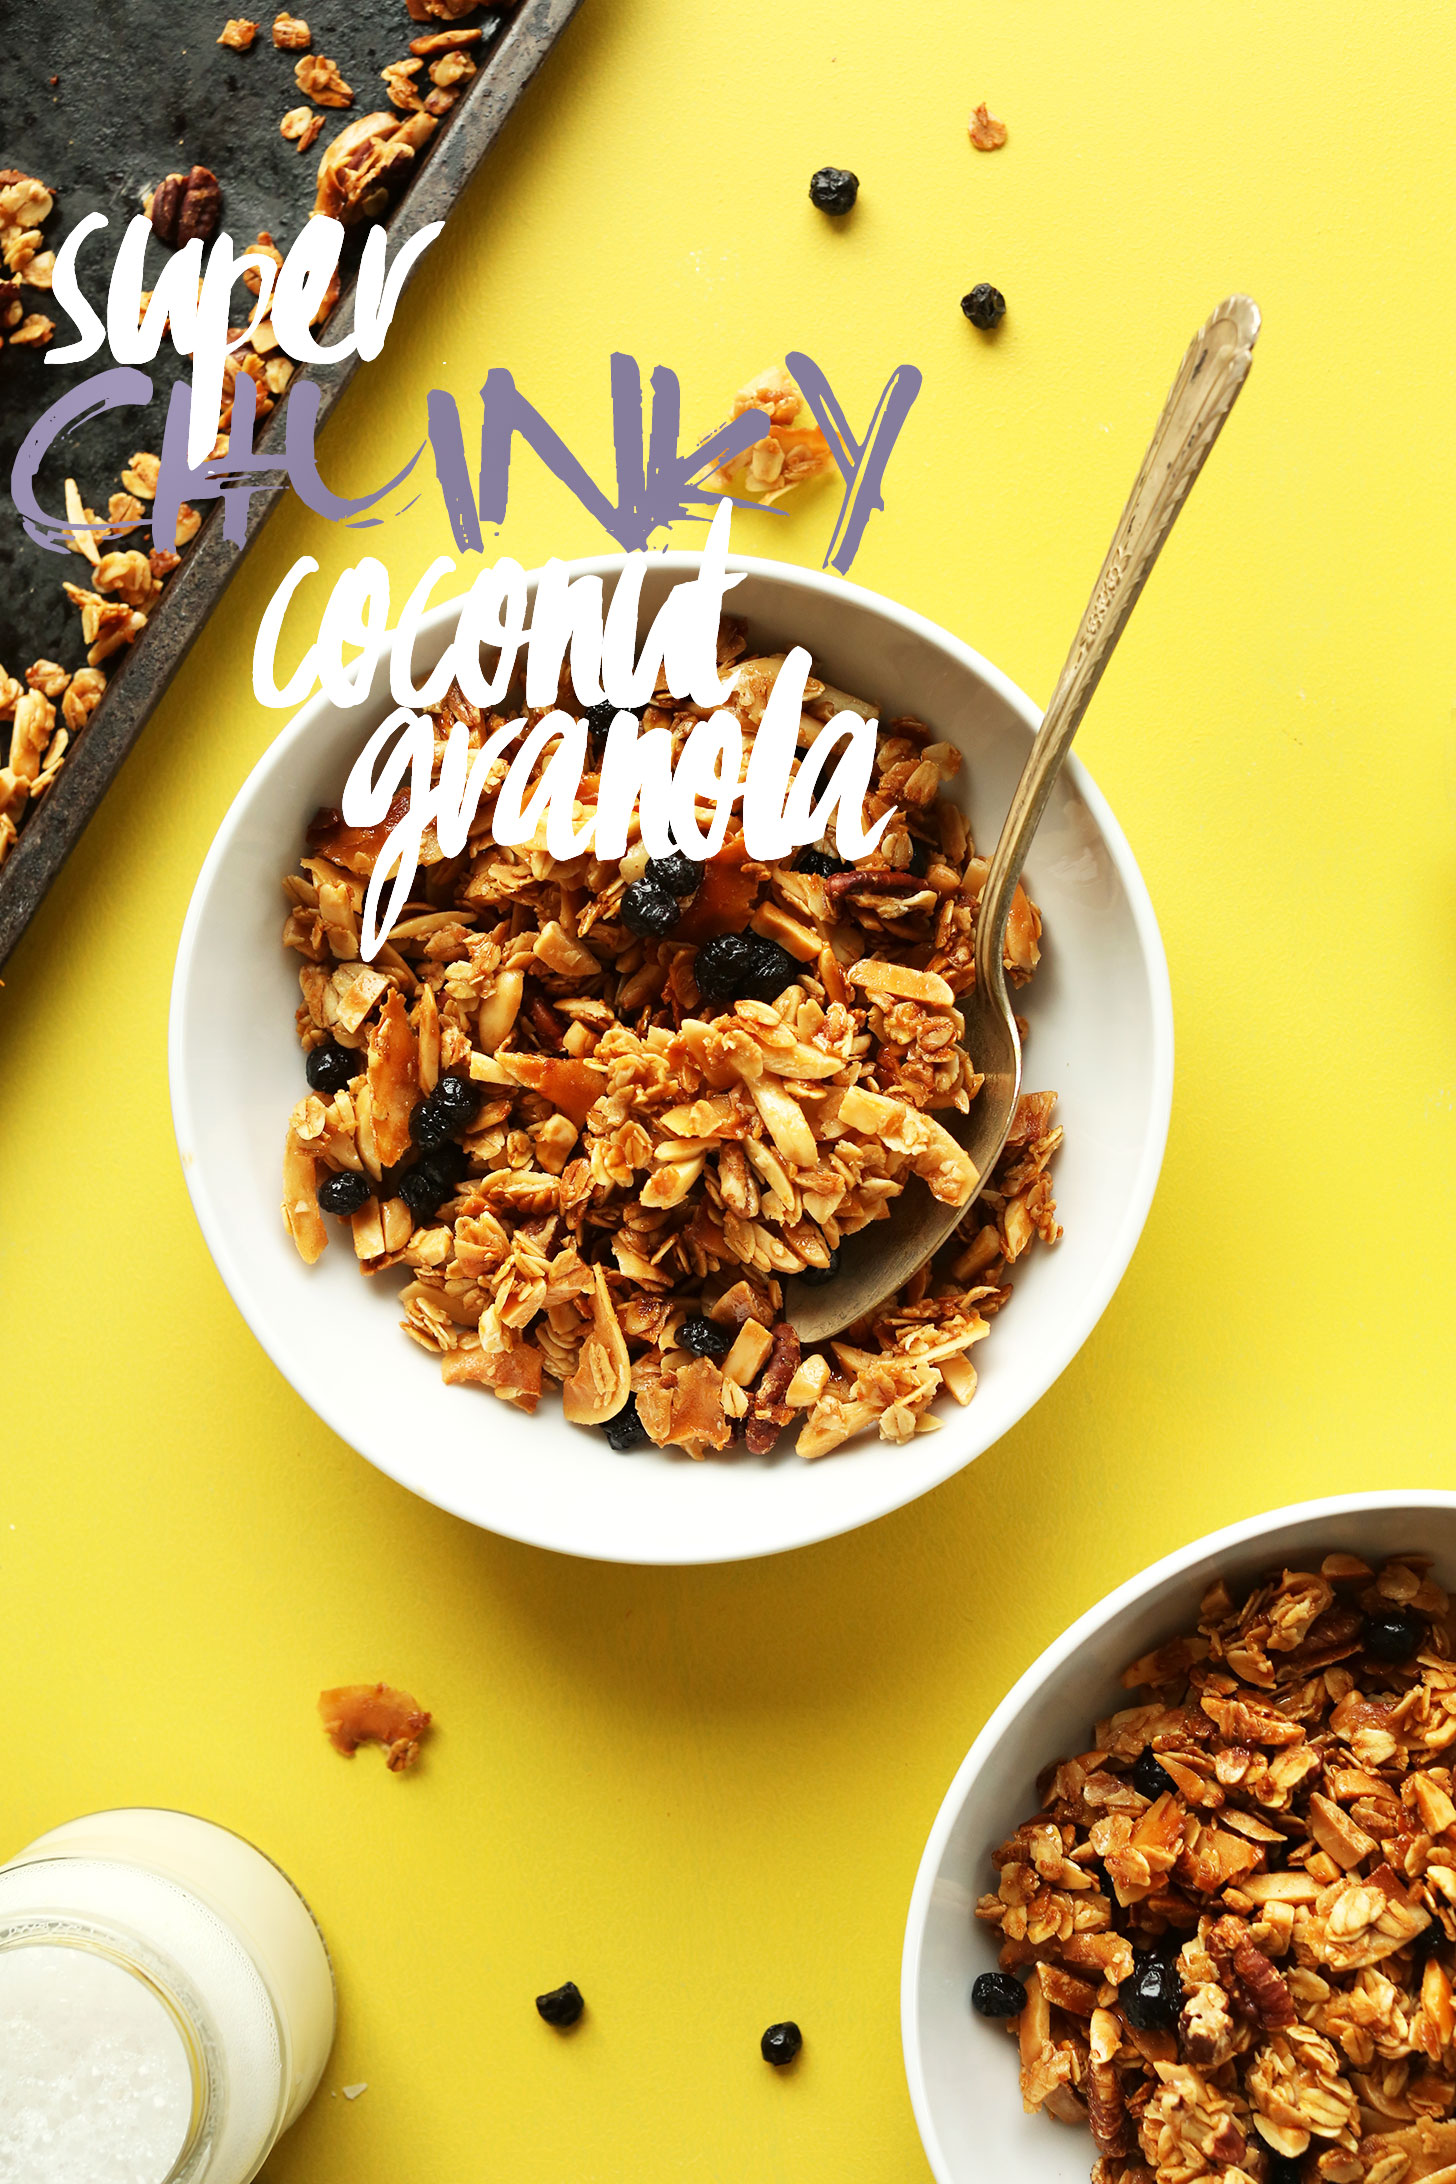 Bowls of gluten-free vegan super chunky coconut granola with dried blueberries